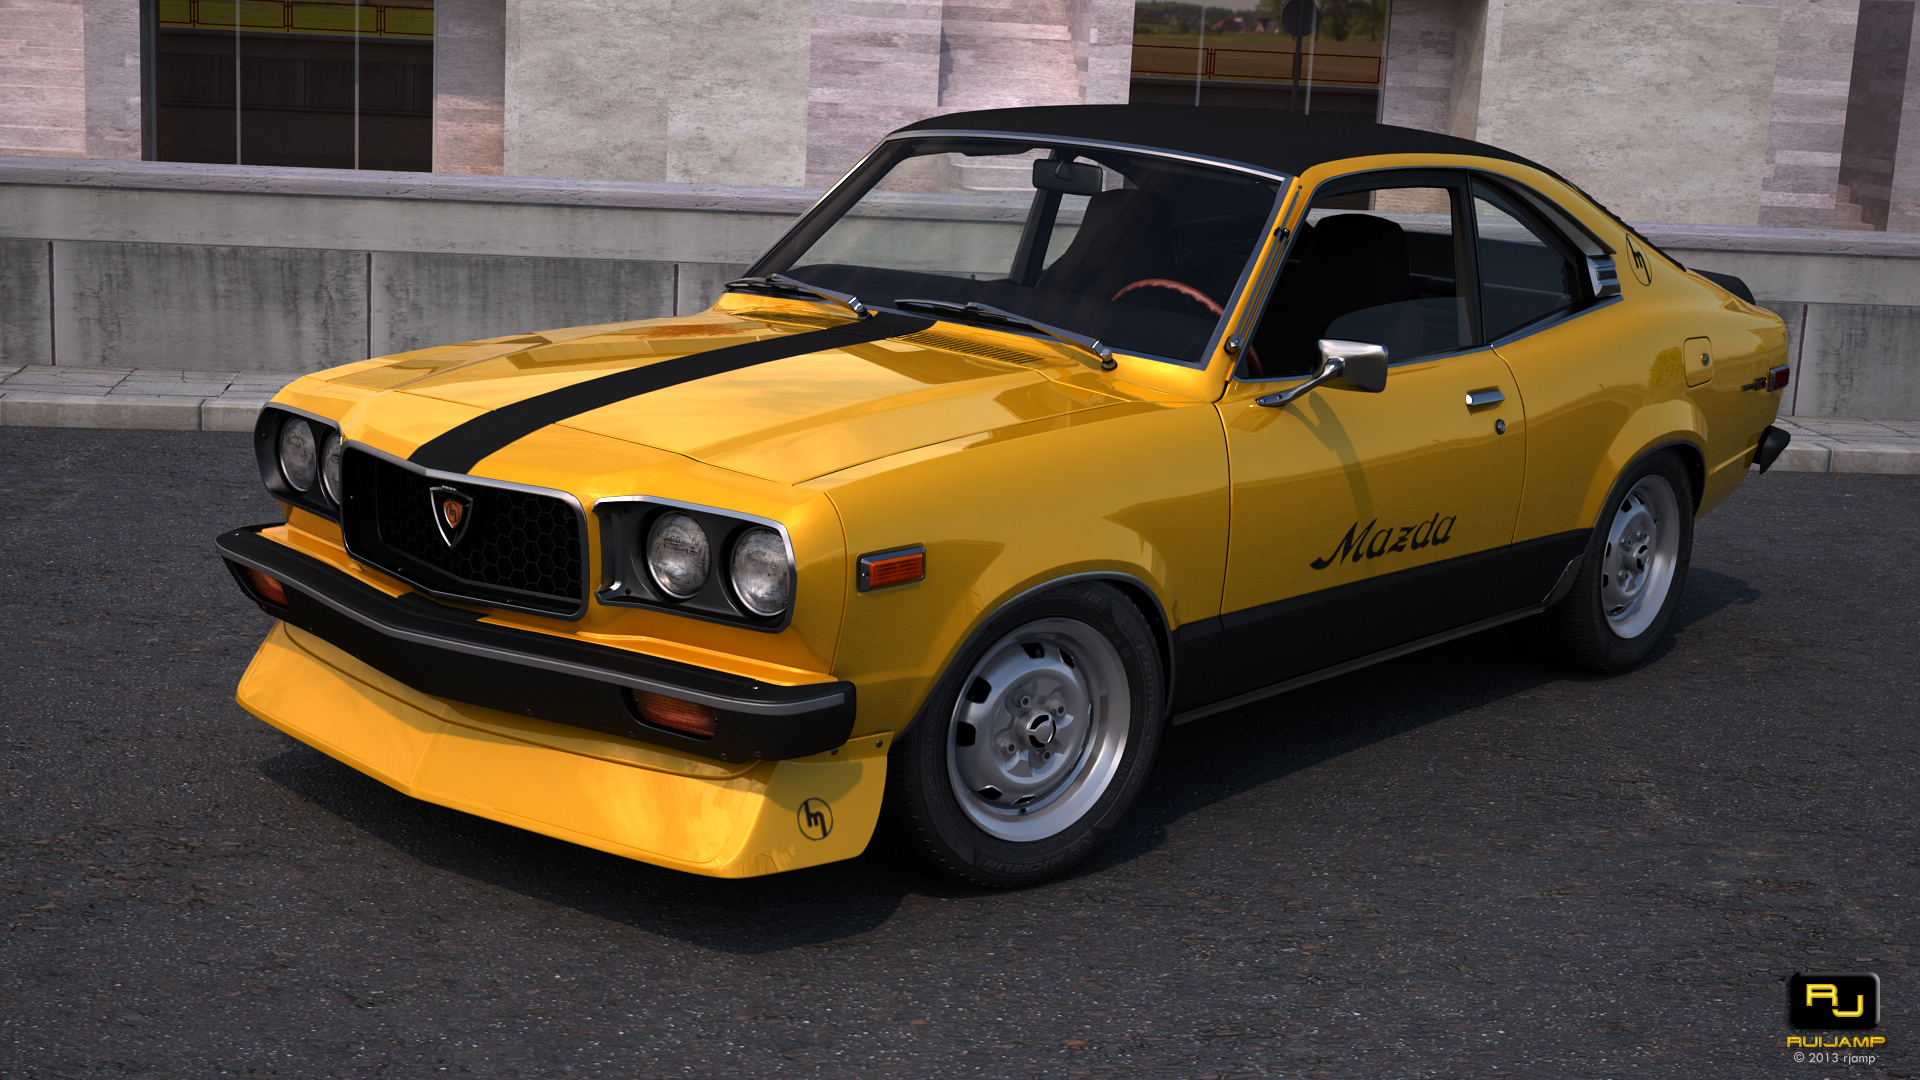 shakotan-mazda-rx3-stance-11 | Cars and Motorcycles | Pinterest ...